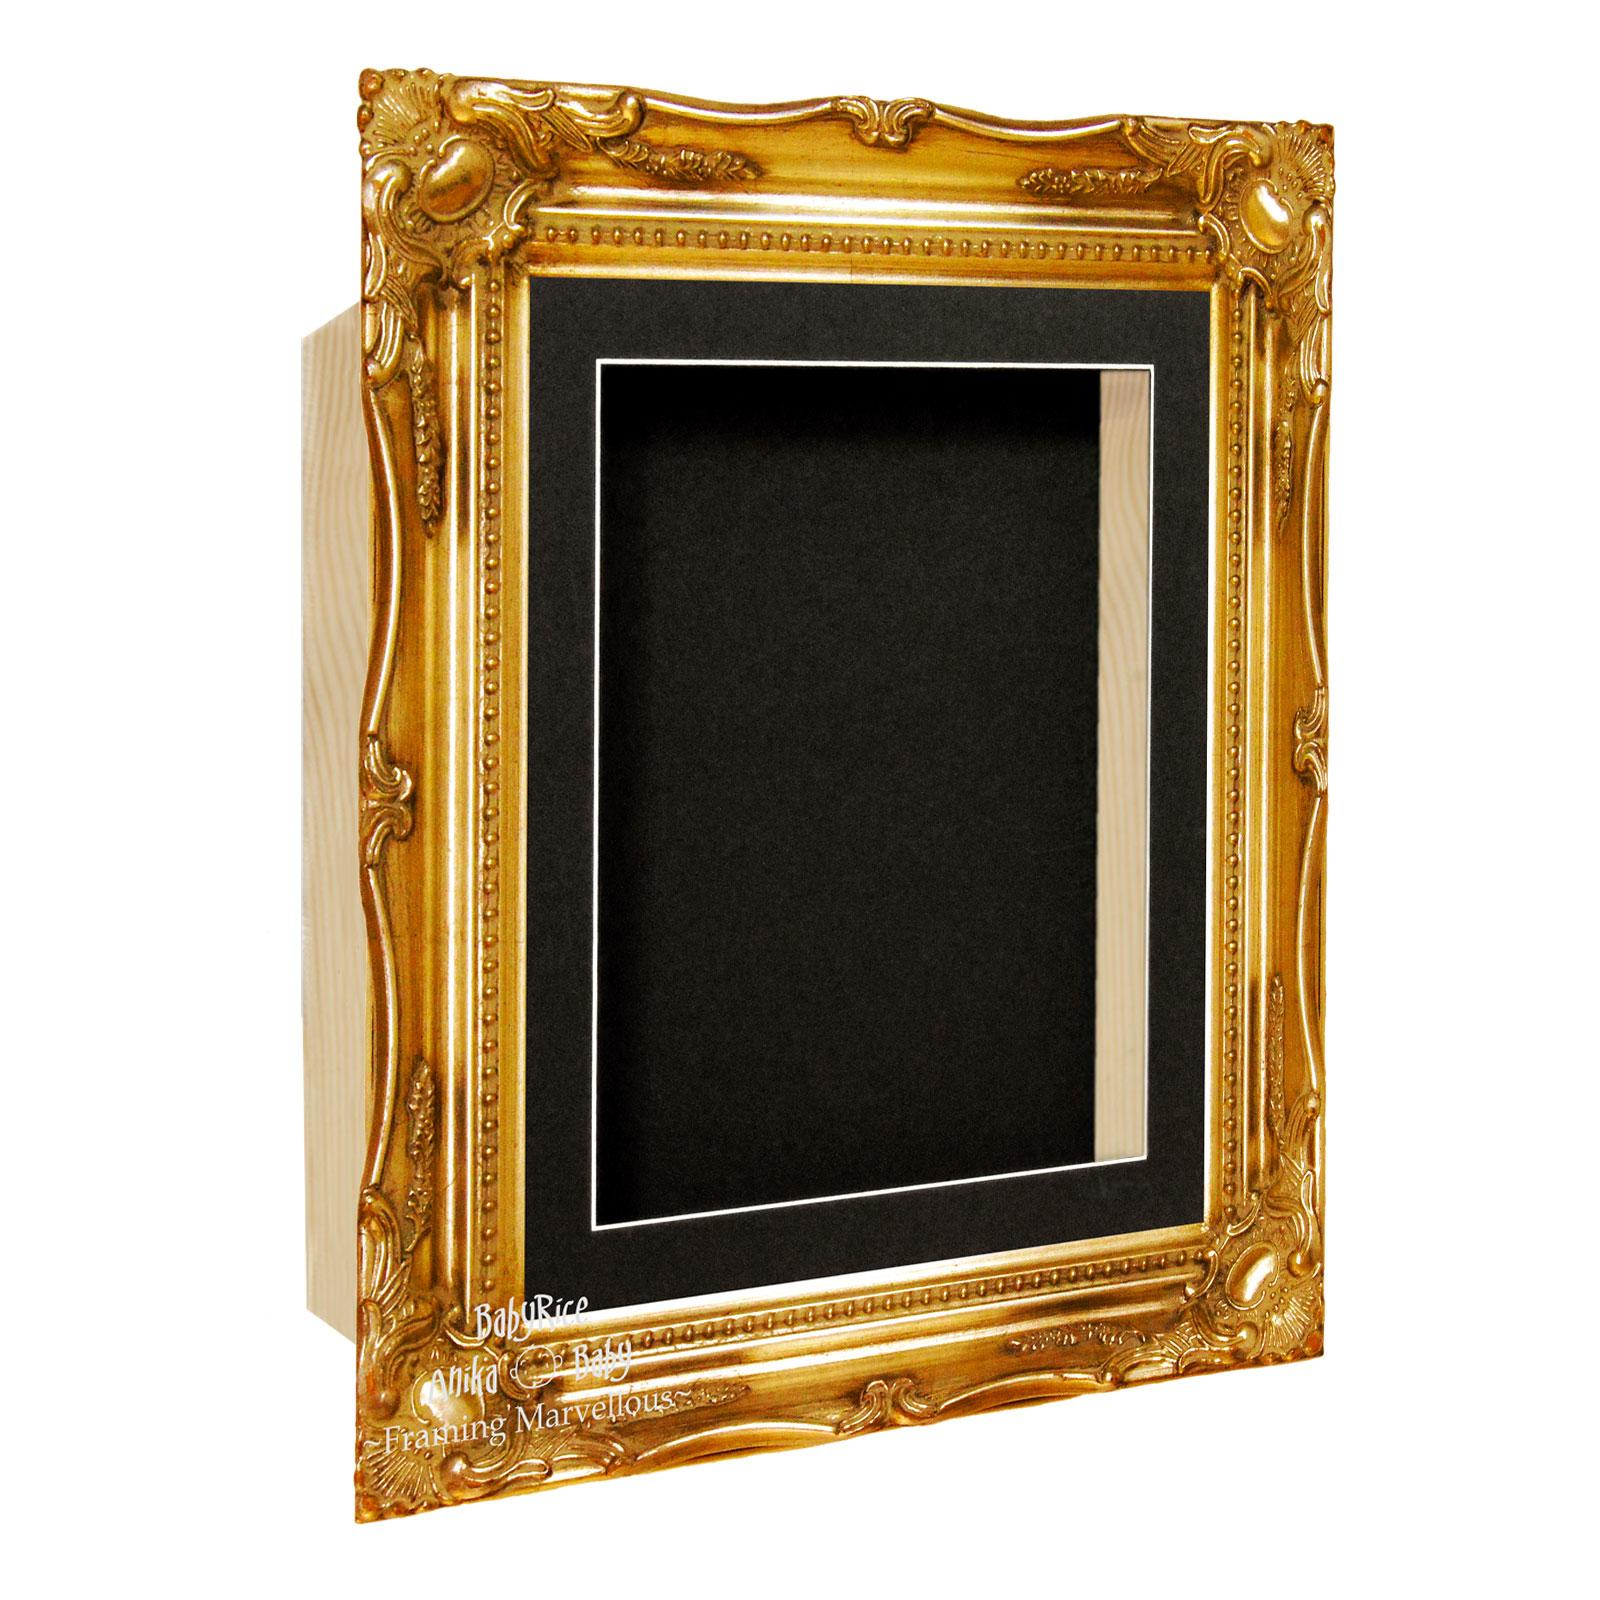 Gold Ornate Italianate Box Display Frame